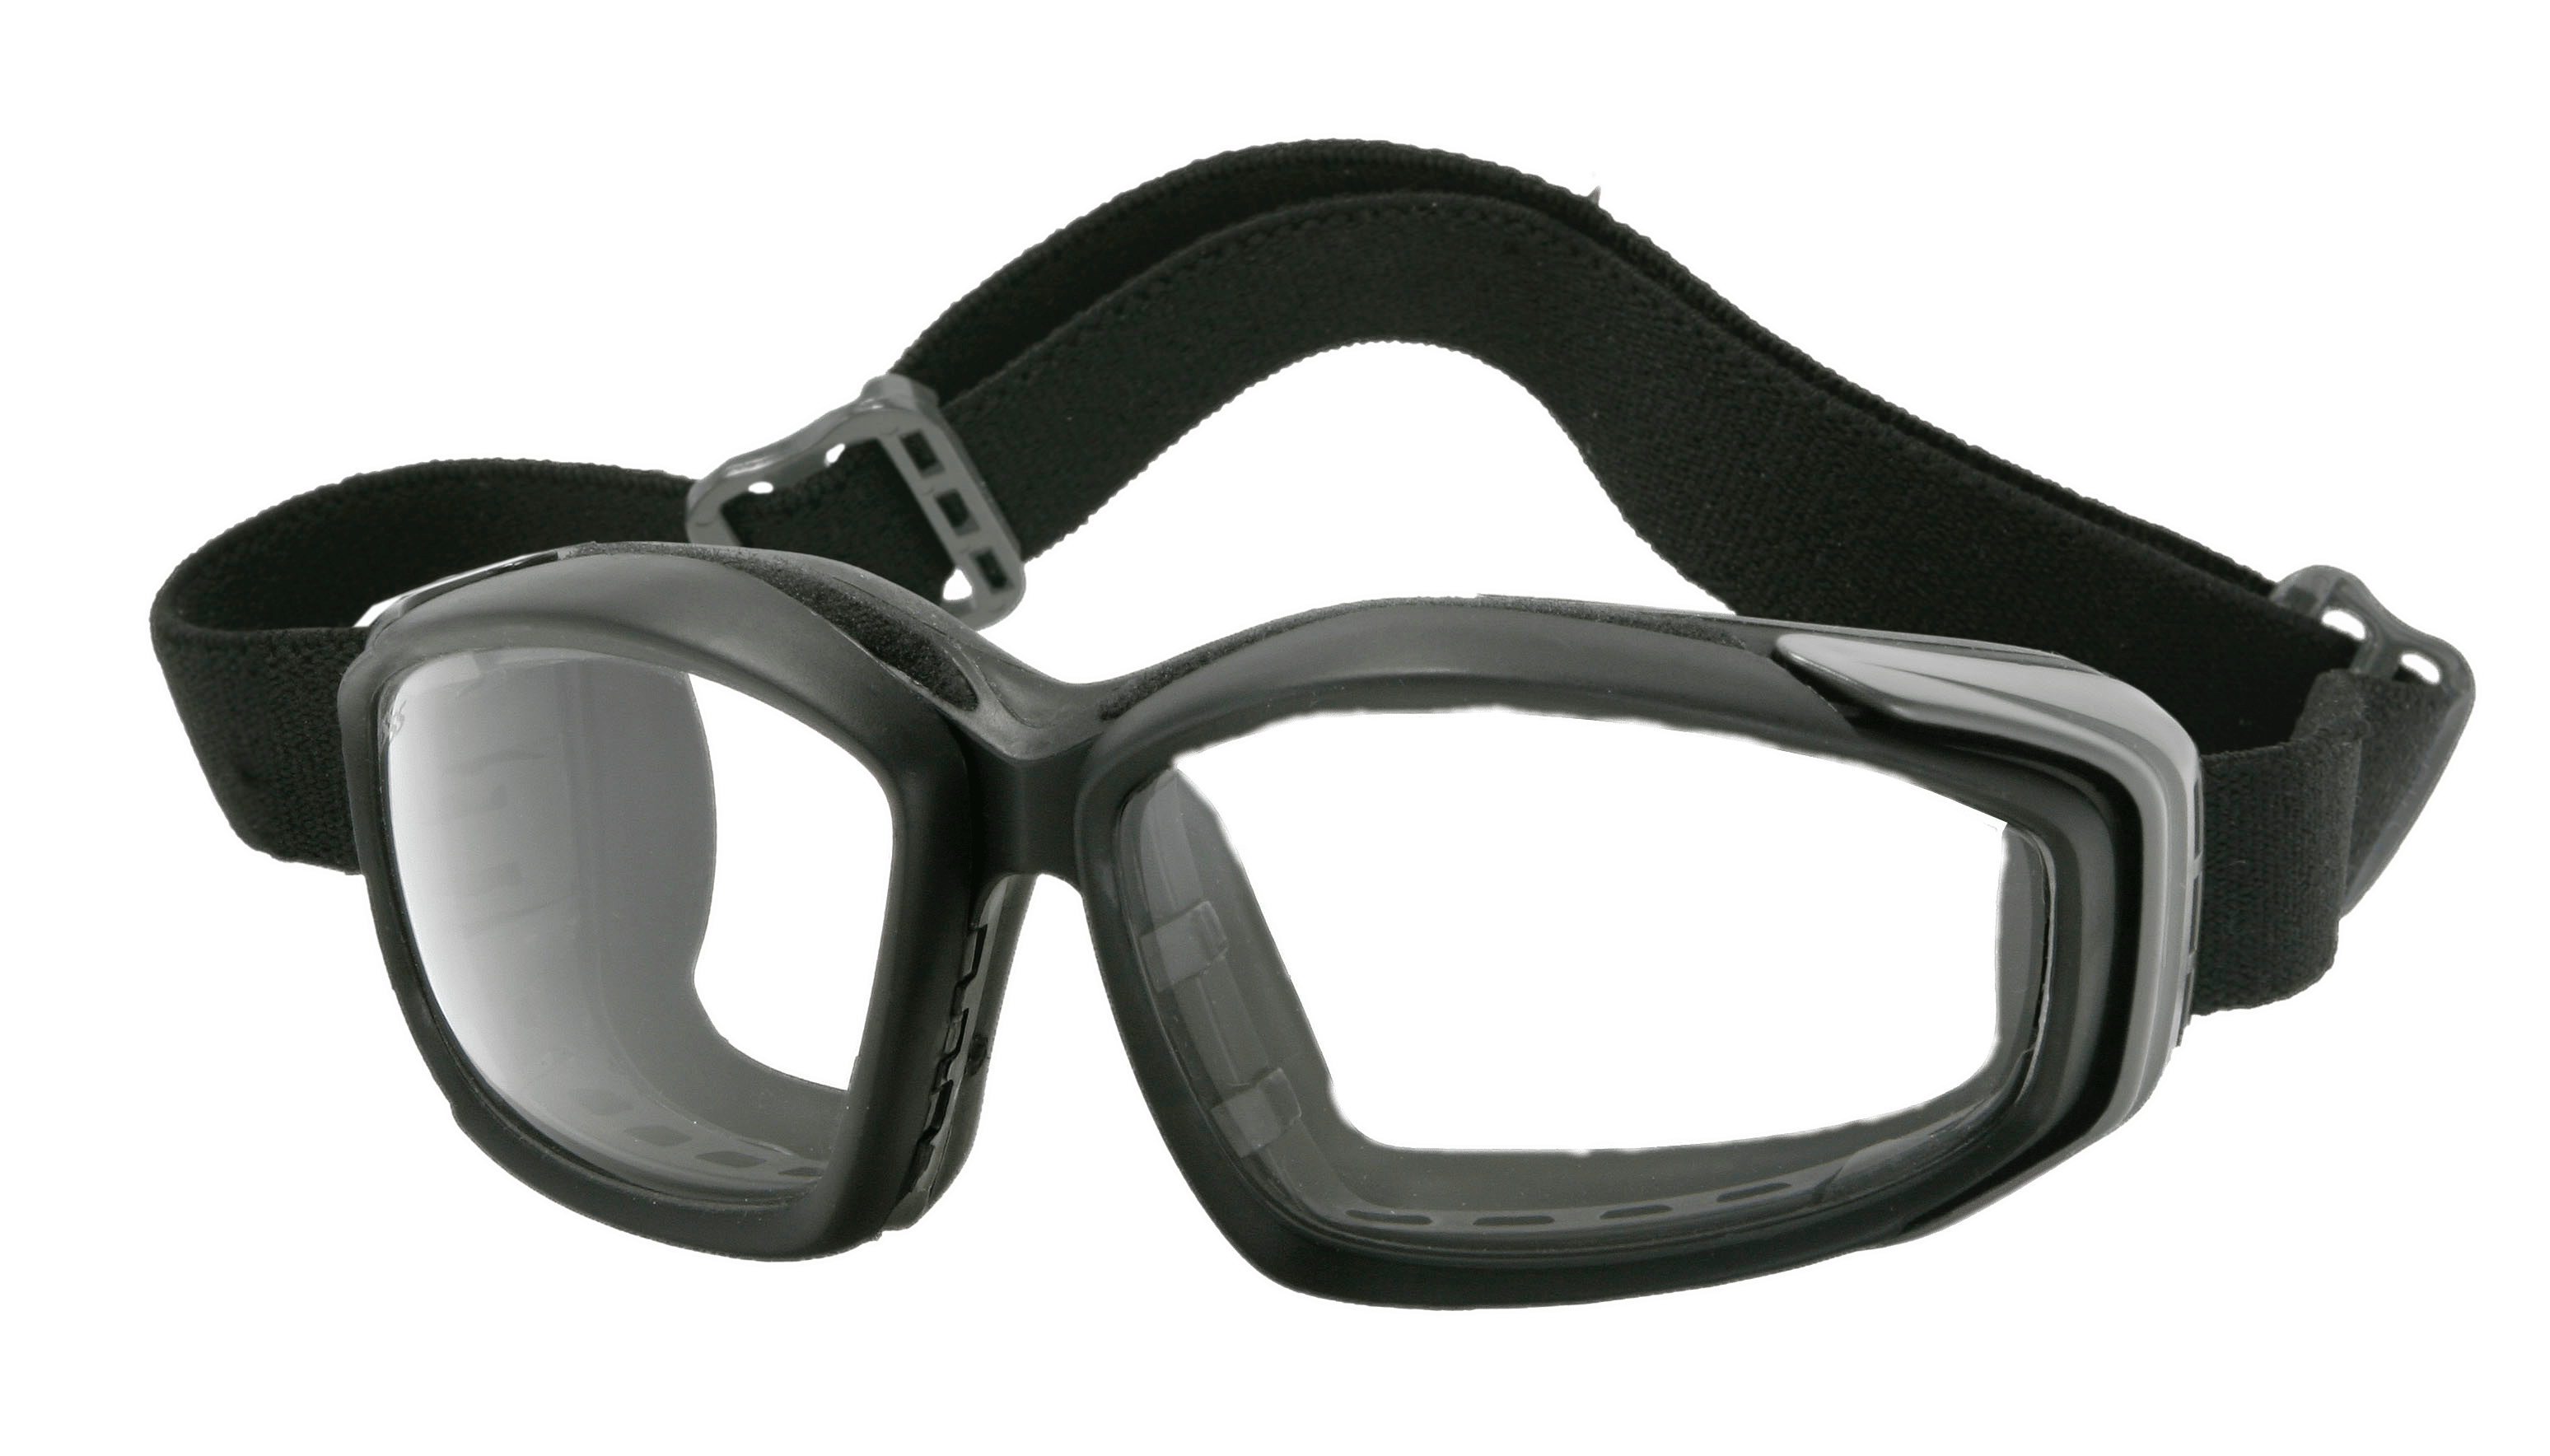 goggles transparent black and white